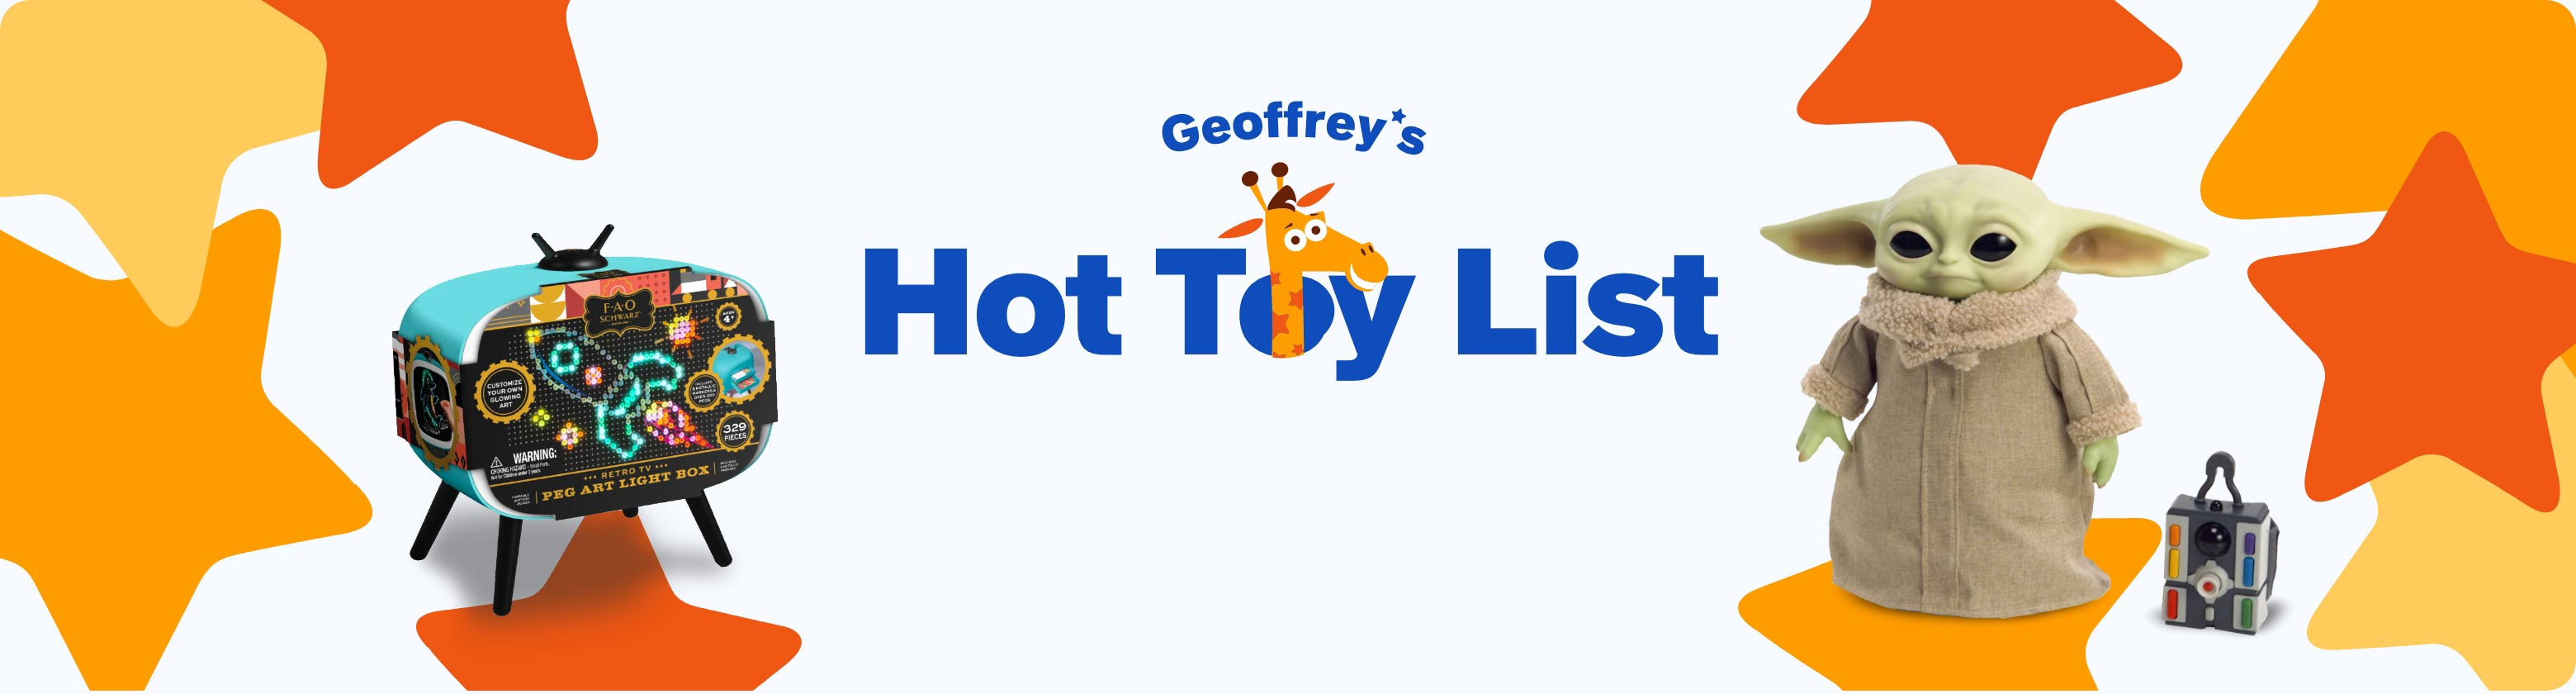 Hot toy list